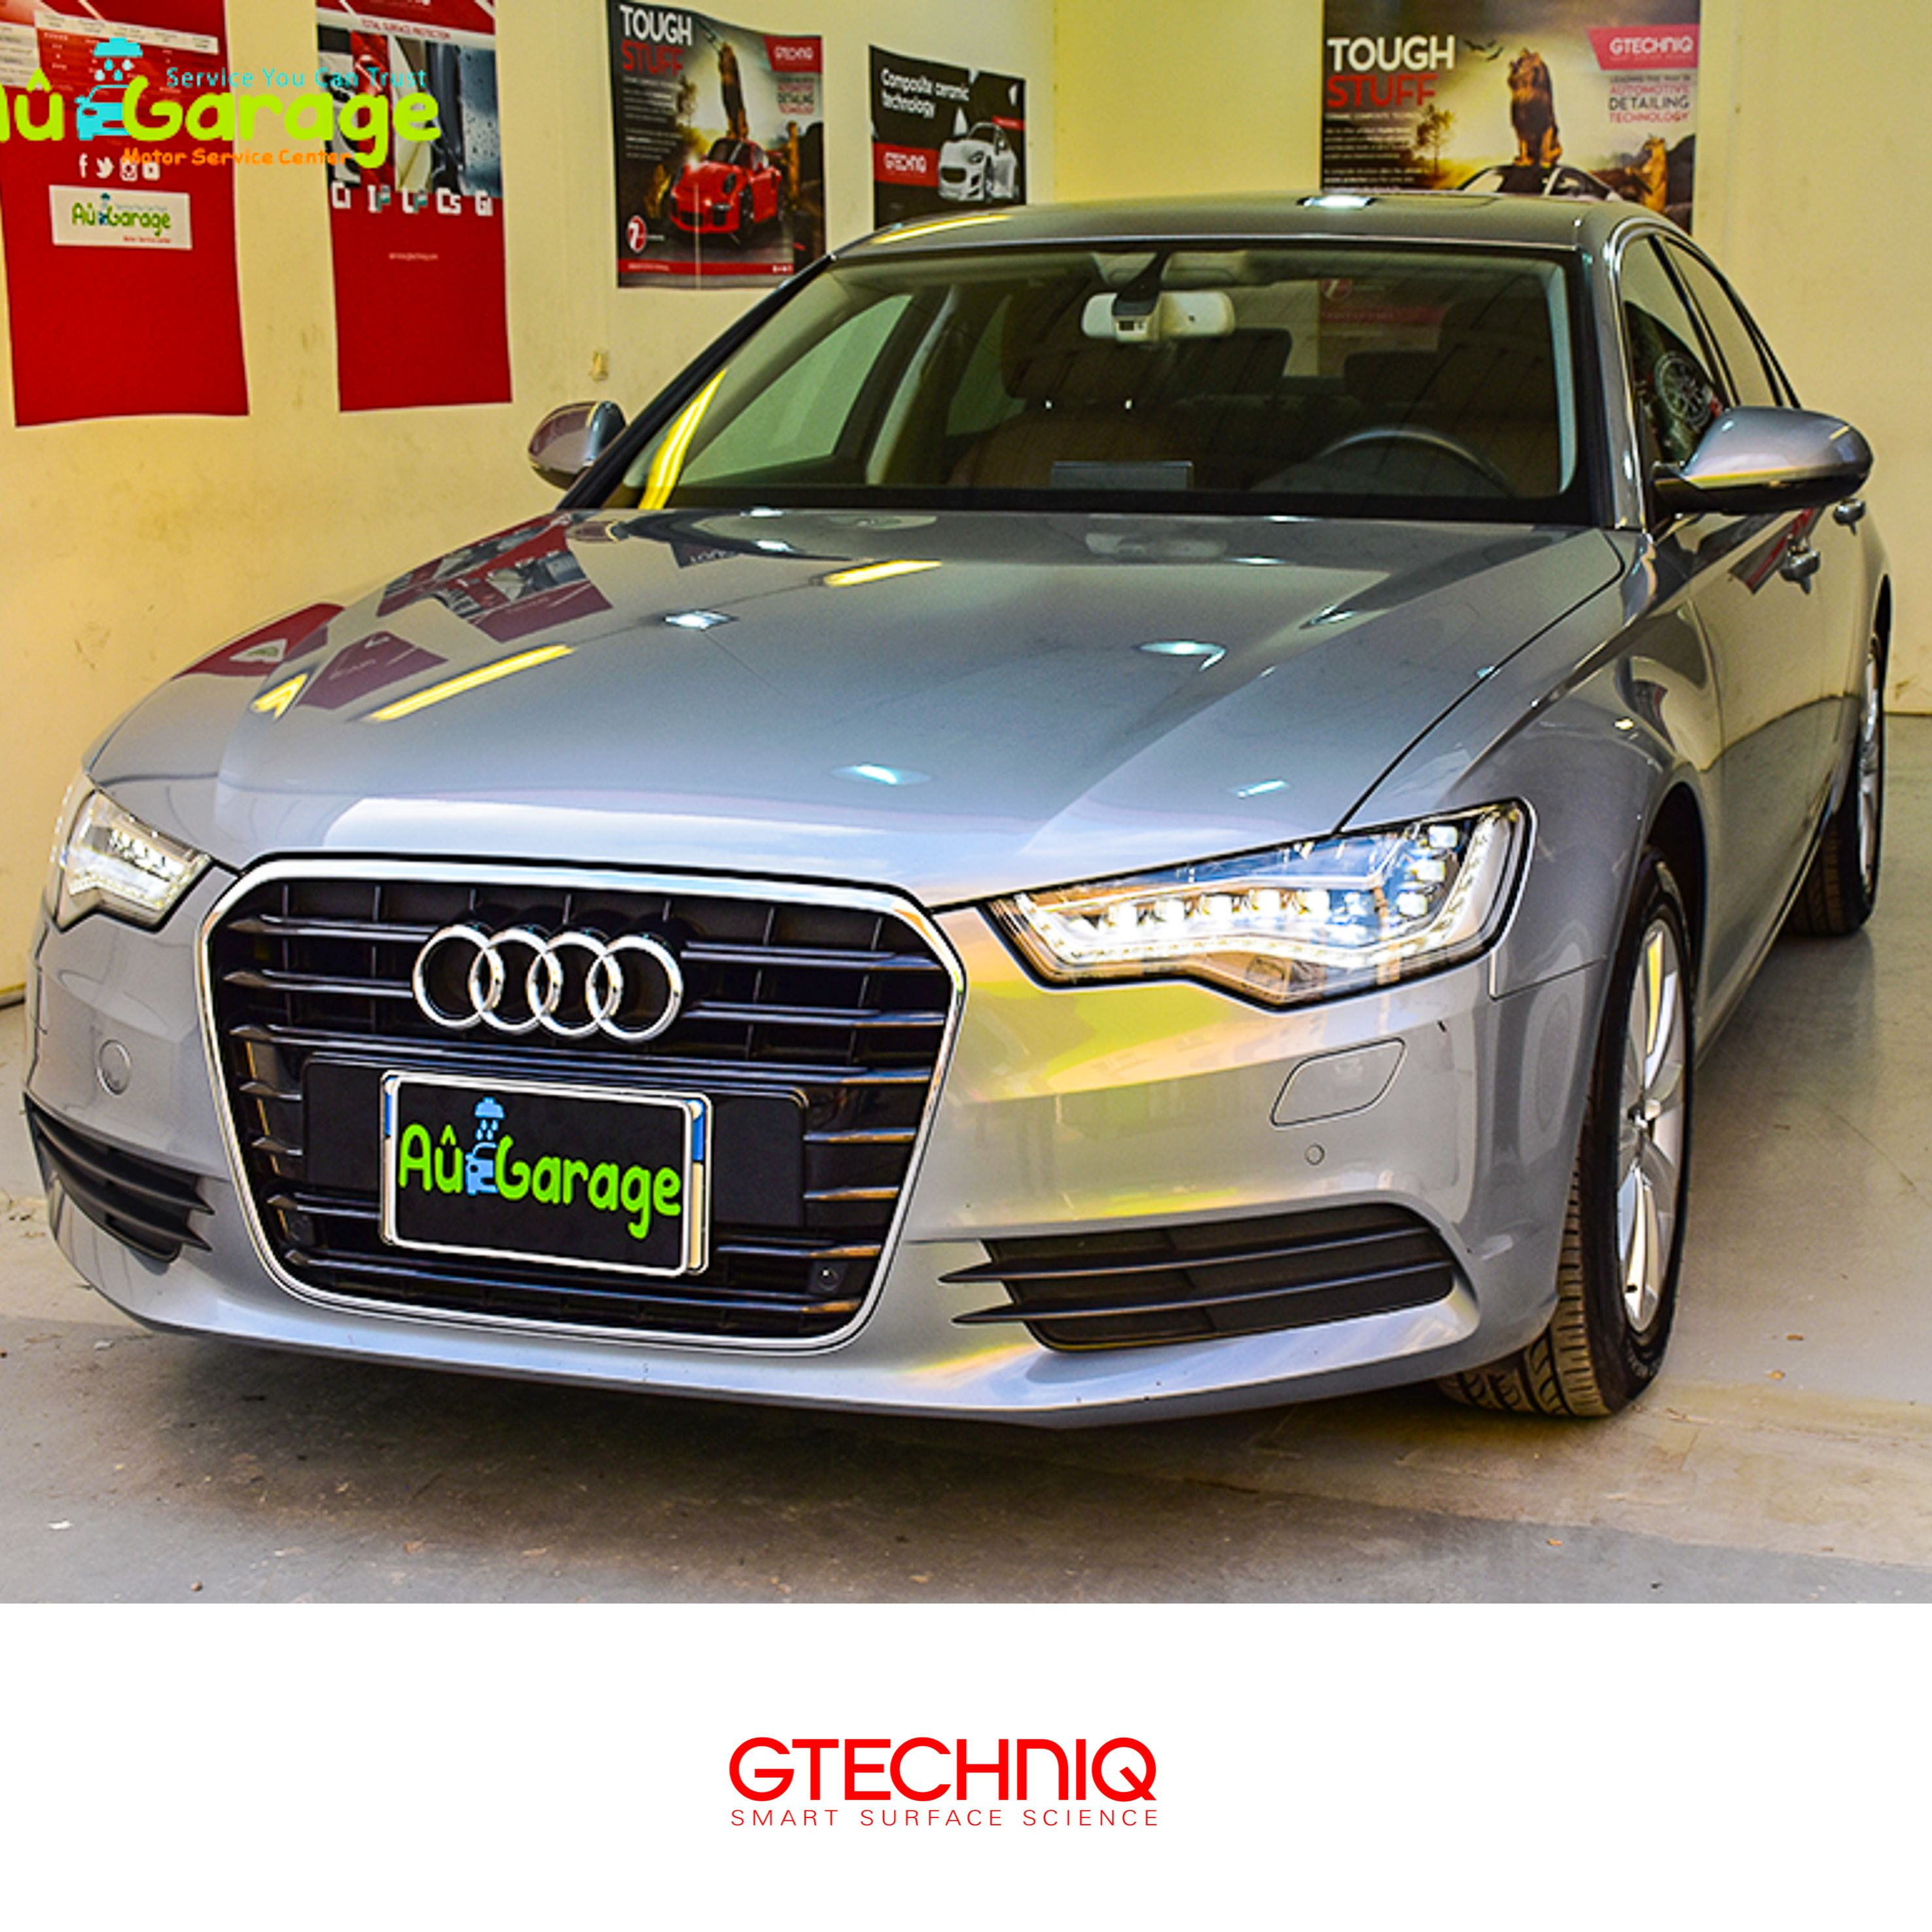 Superb #Audi A6 Protected By Gtechniq And Our Accredited Detailer Au Garage Motor  Service Center 🌐